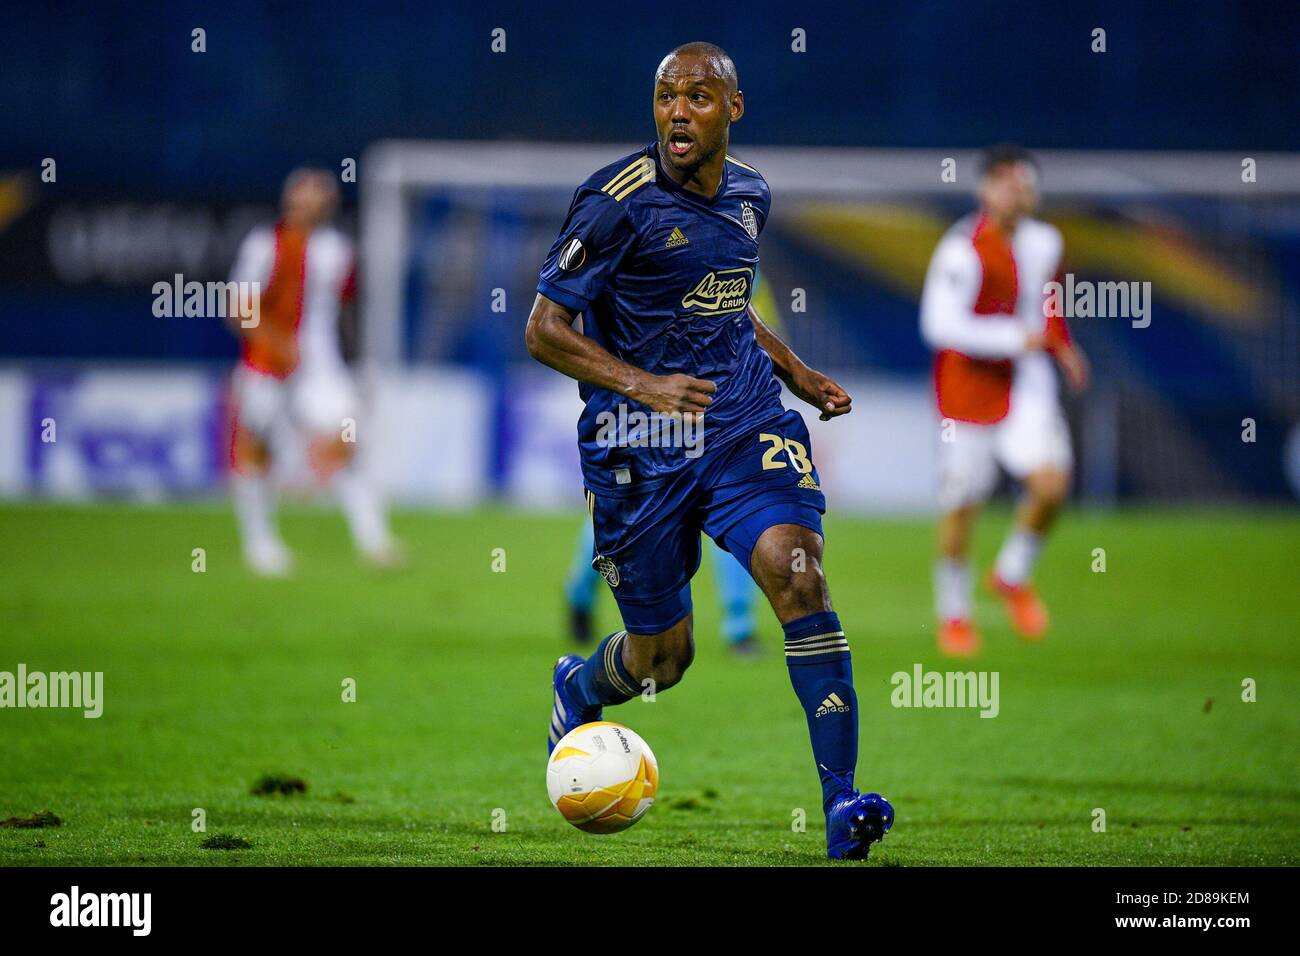 Kevin Theophile Catherine Of Dinamo Zagreb During The Uefa Europa League Group Stage Group K Football Match Between Dinamo Zagreb And Feyenoord Ro C Stock Photo Alamy